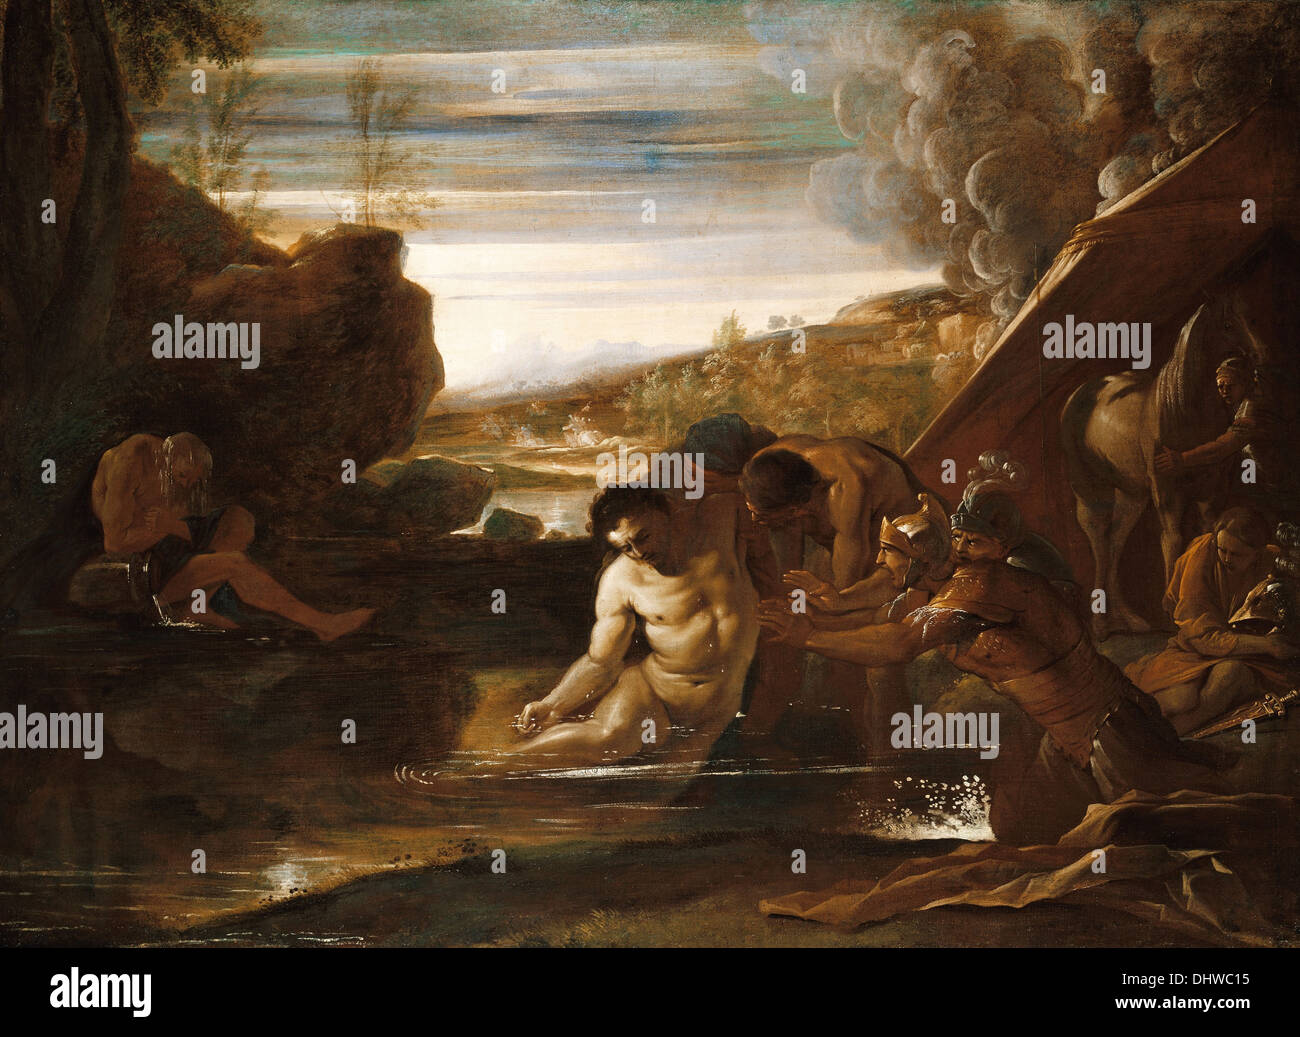 Alexander the Great Rescued from the River Cydnus - by Pietro Testa, 1650 - Stock Image